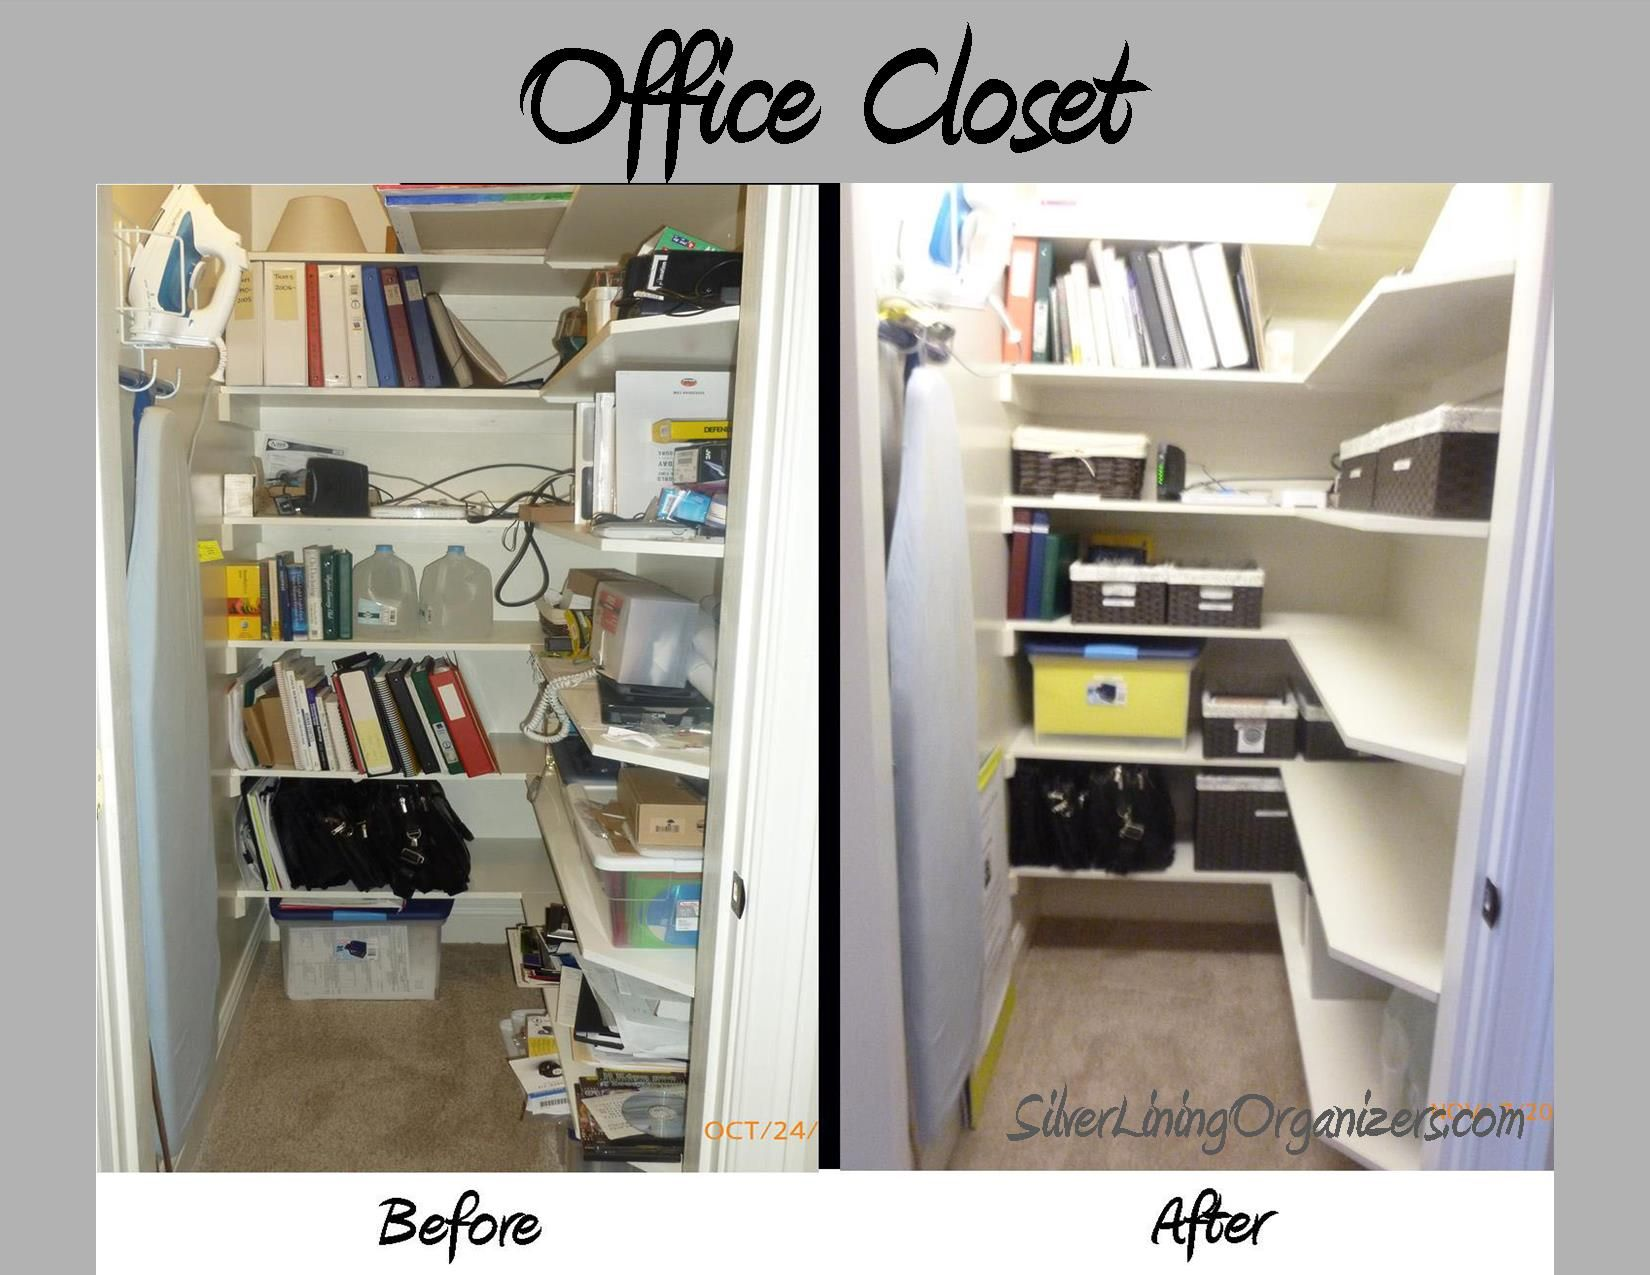 Silver Lining Organizers, LLC Organized Office Supply Closet | Before & After Photos ...